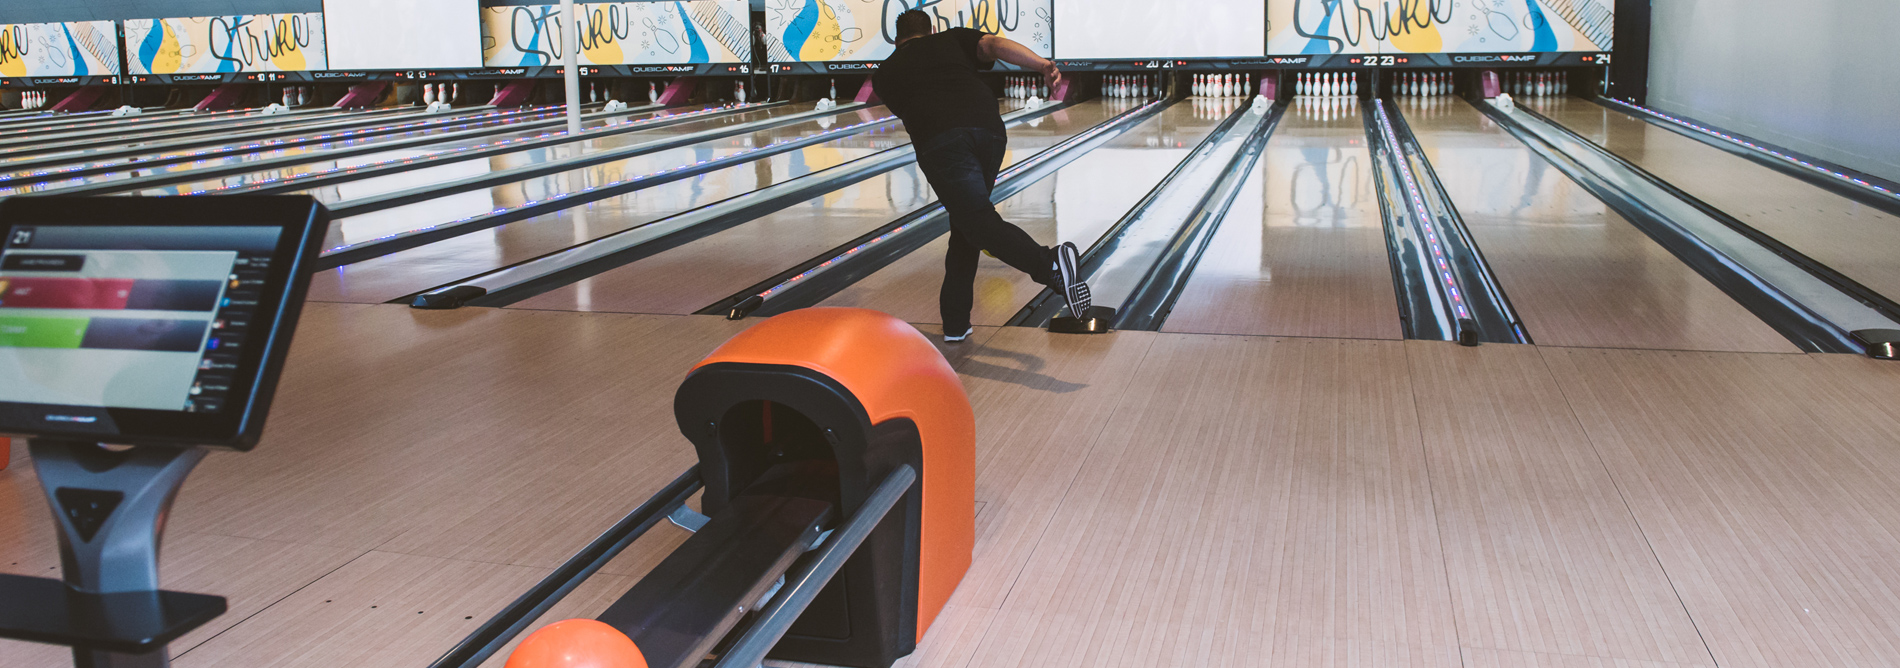 Bowling-QubicaAMF-Harmony-Ball-return-Energy-Efficient.jpg